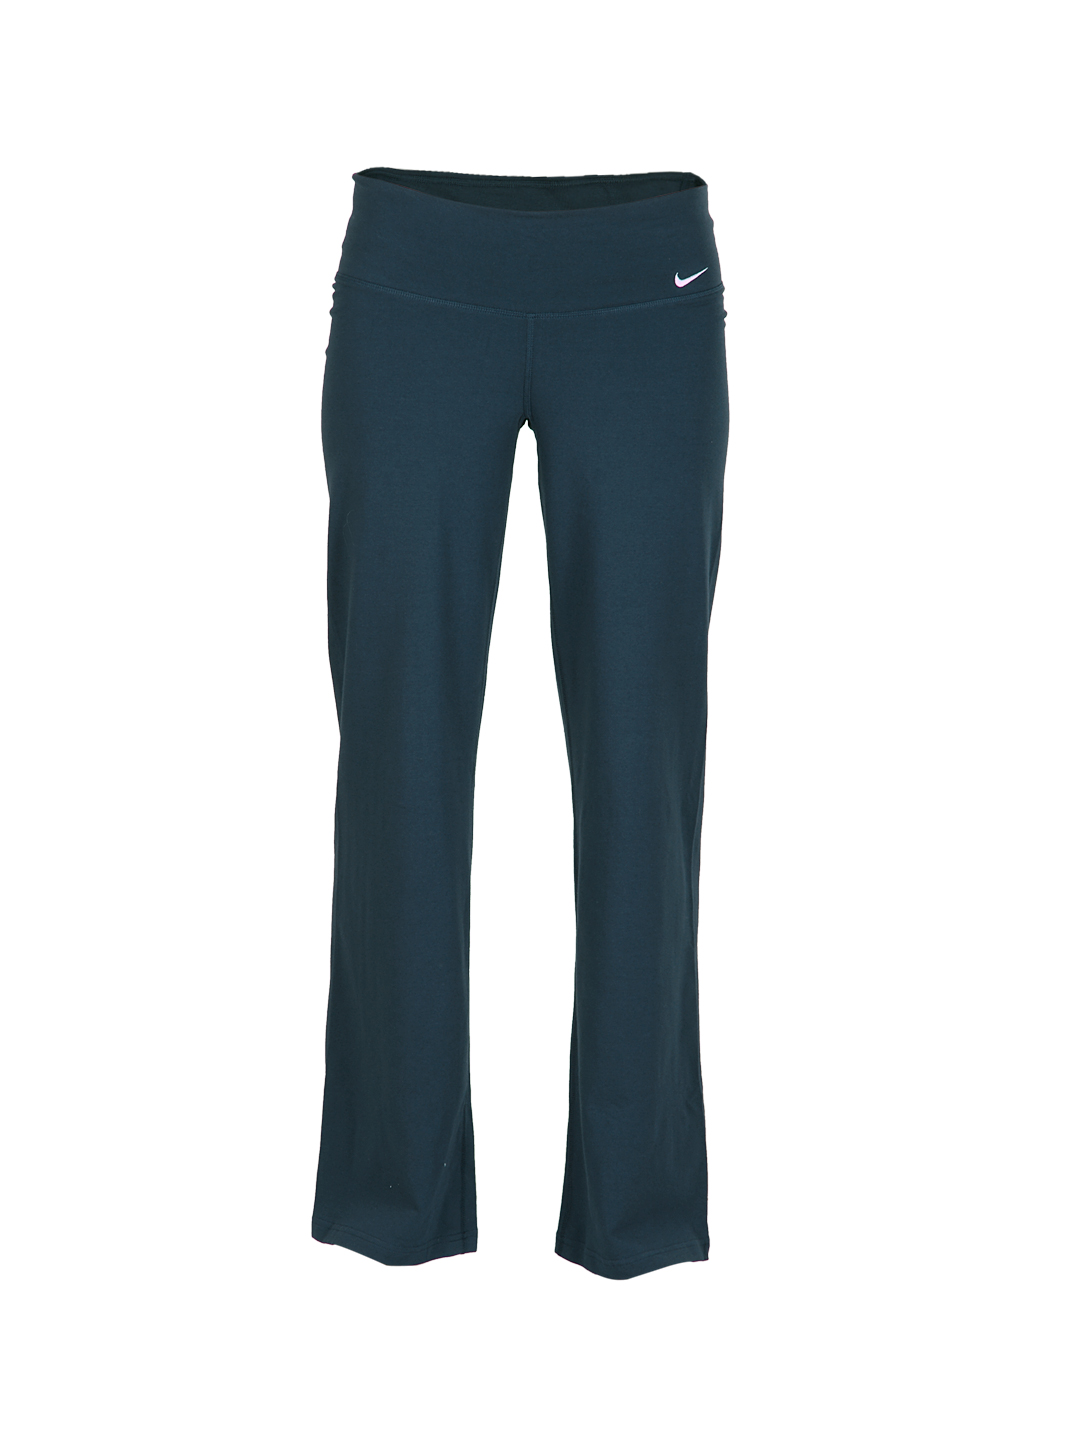 Nike Women Navy Blue Track Pant